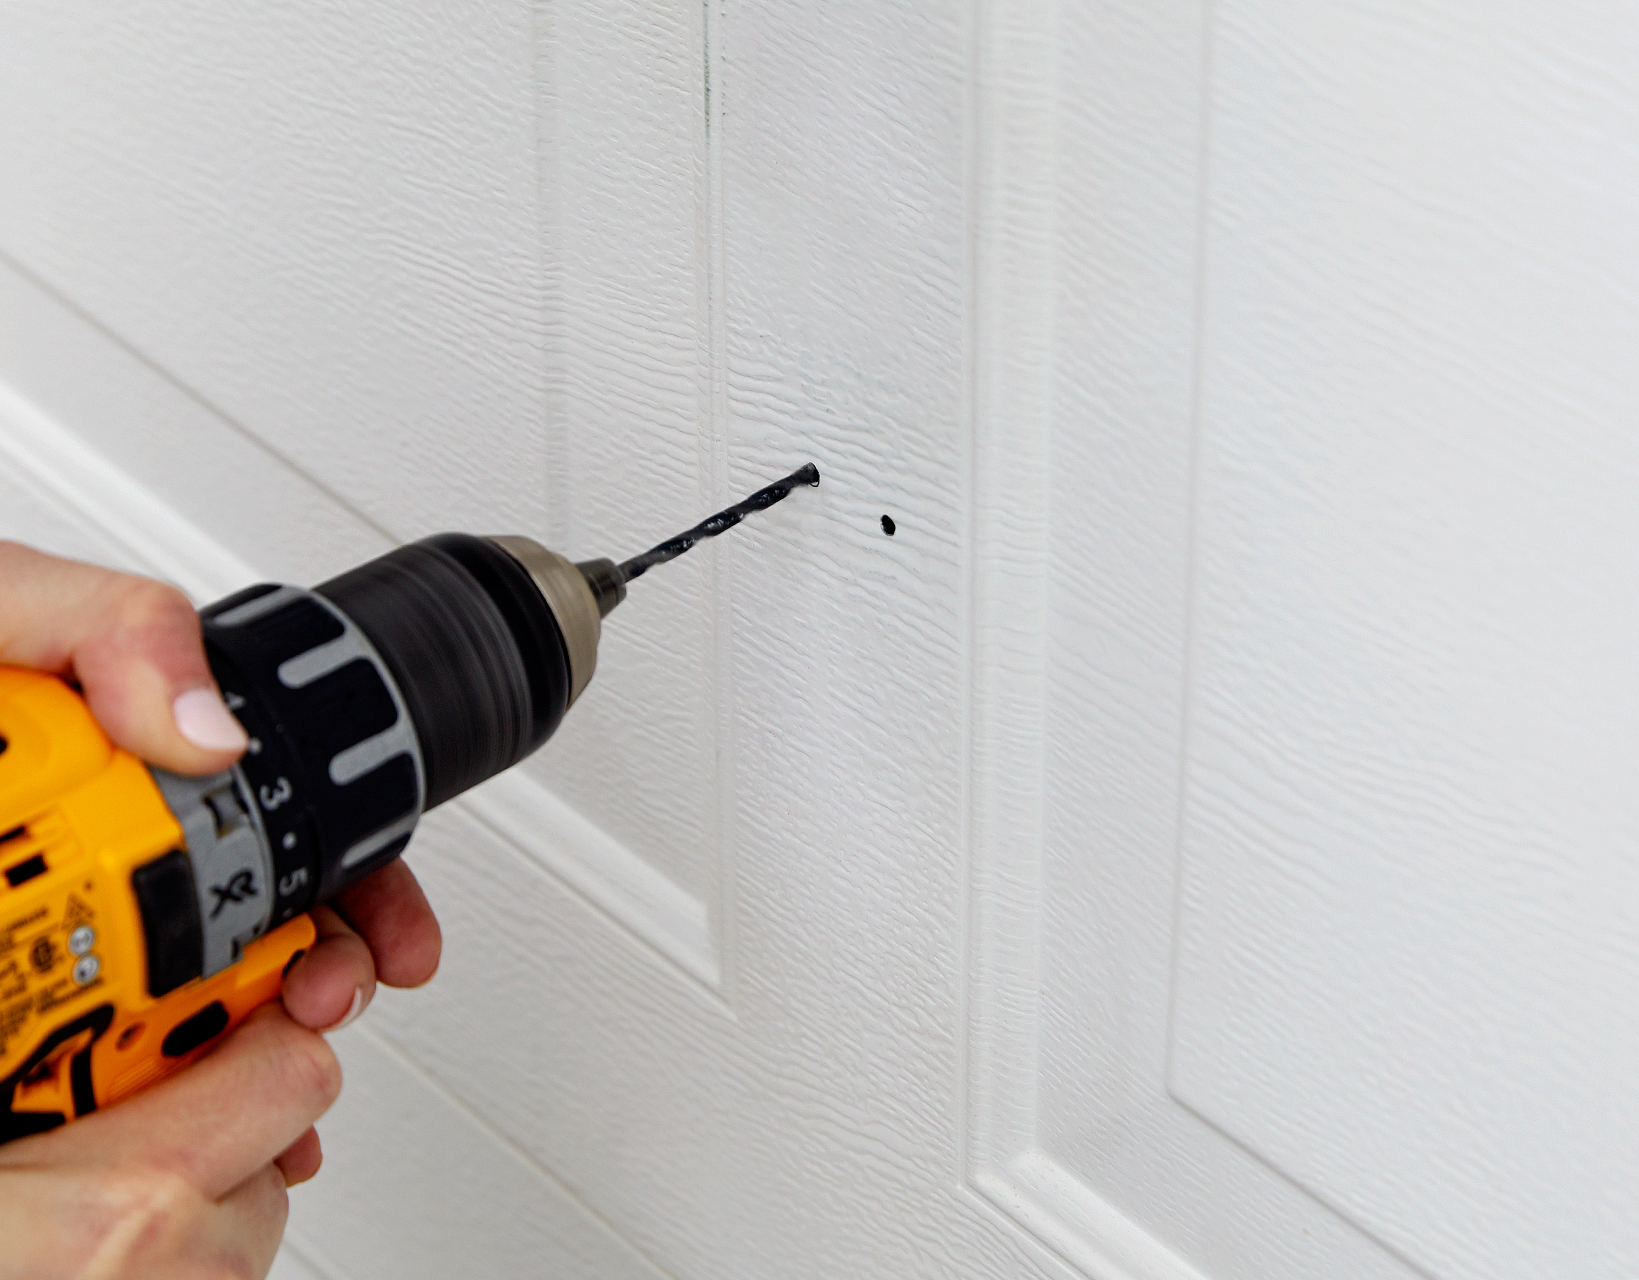 add additional pilot hole for handle